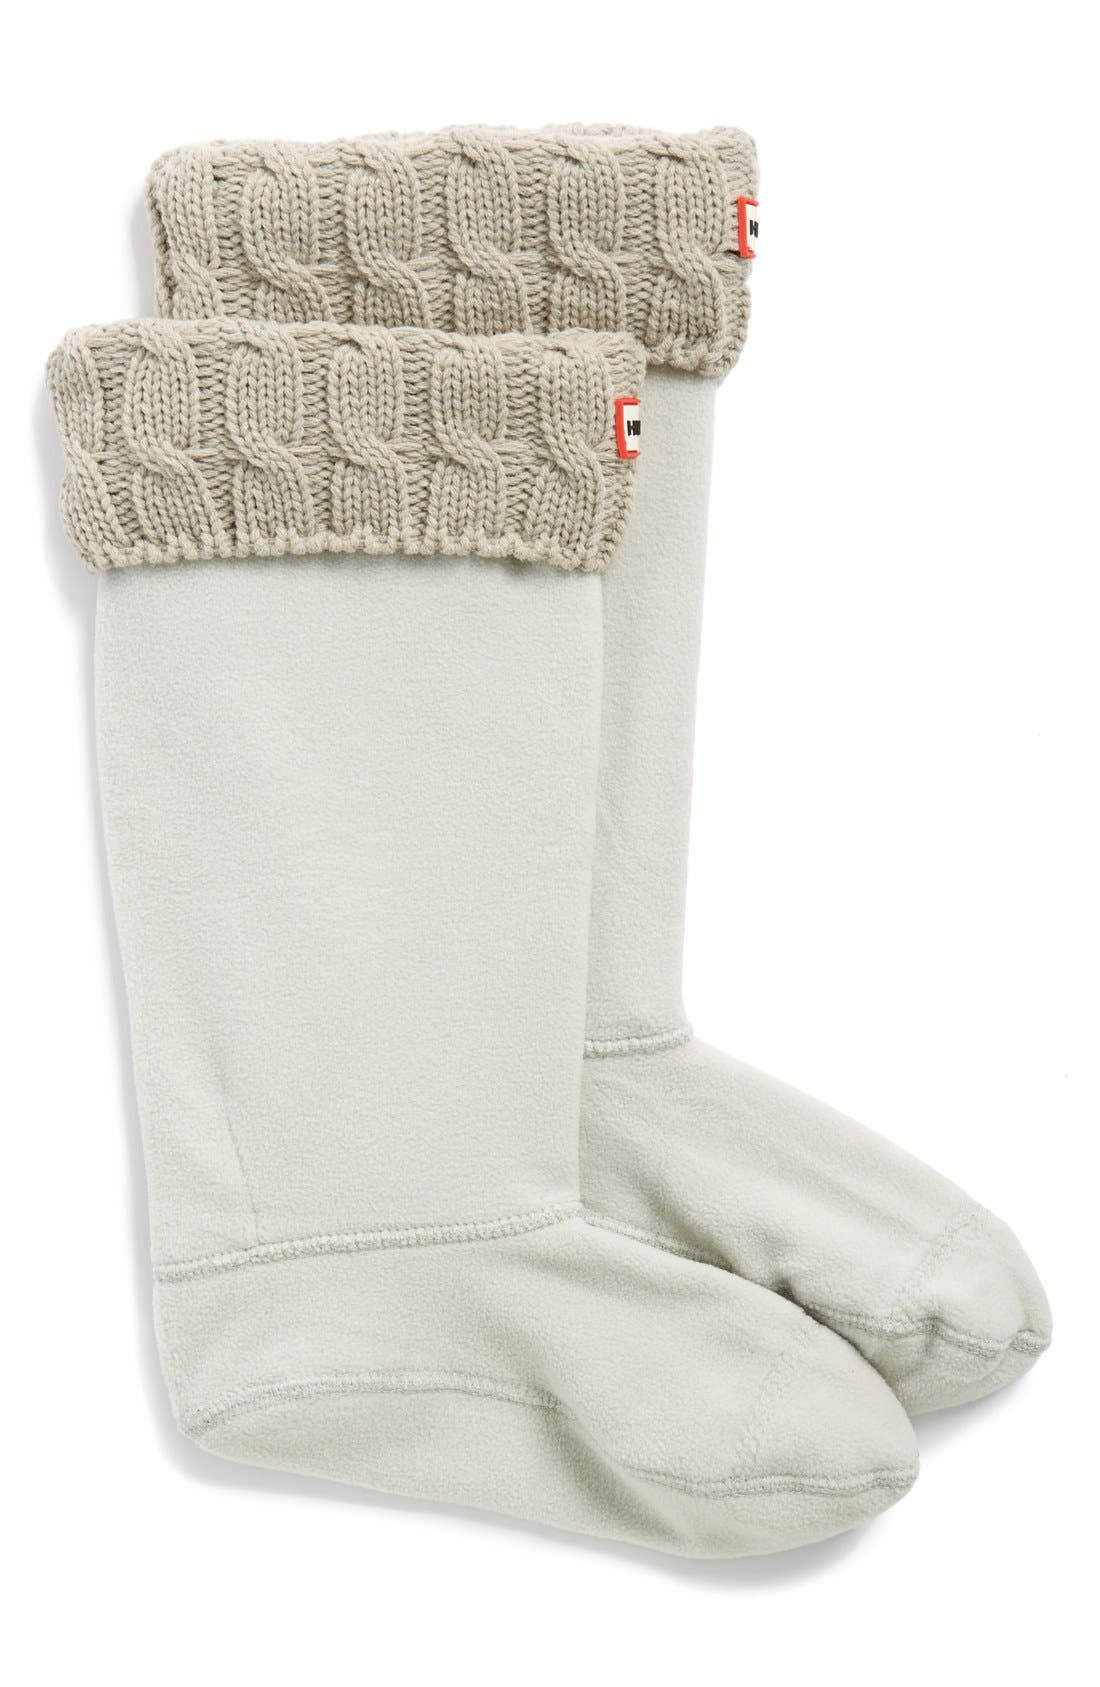 Original Tall Cable Knit Cuff Welly Boot Socks,                             Main thumbnail 1, color,                             Greige